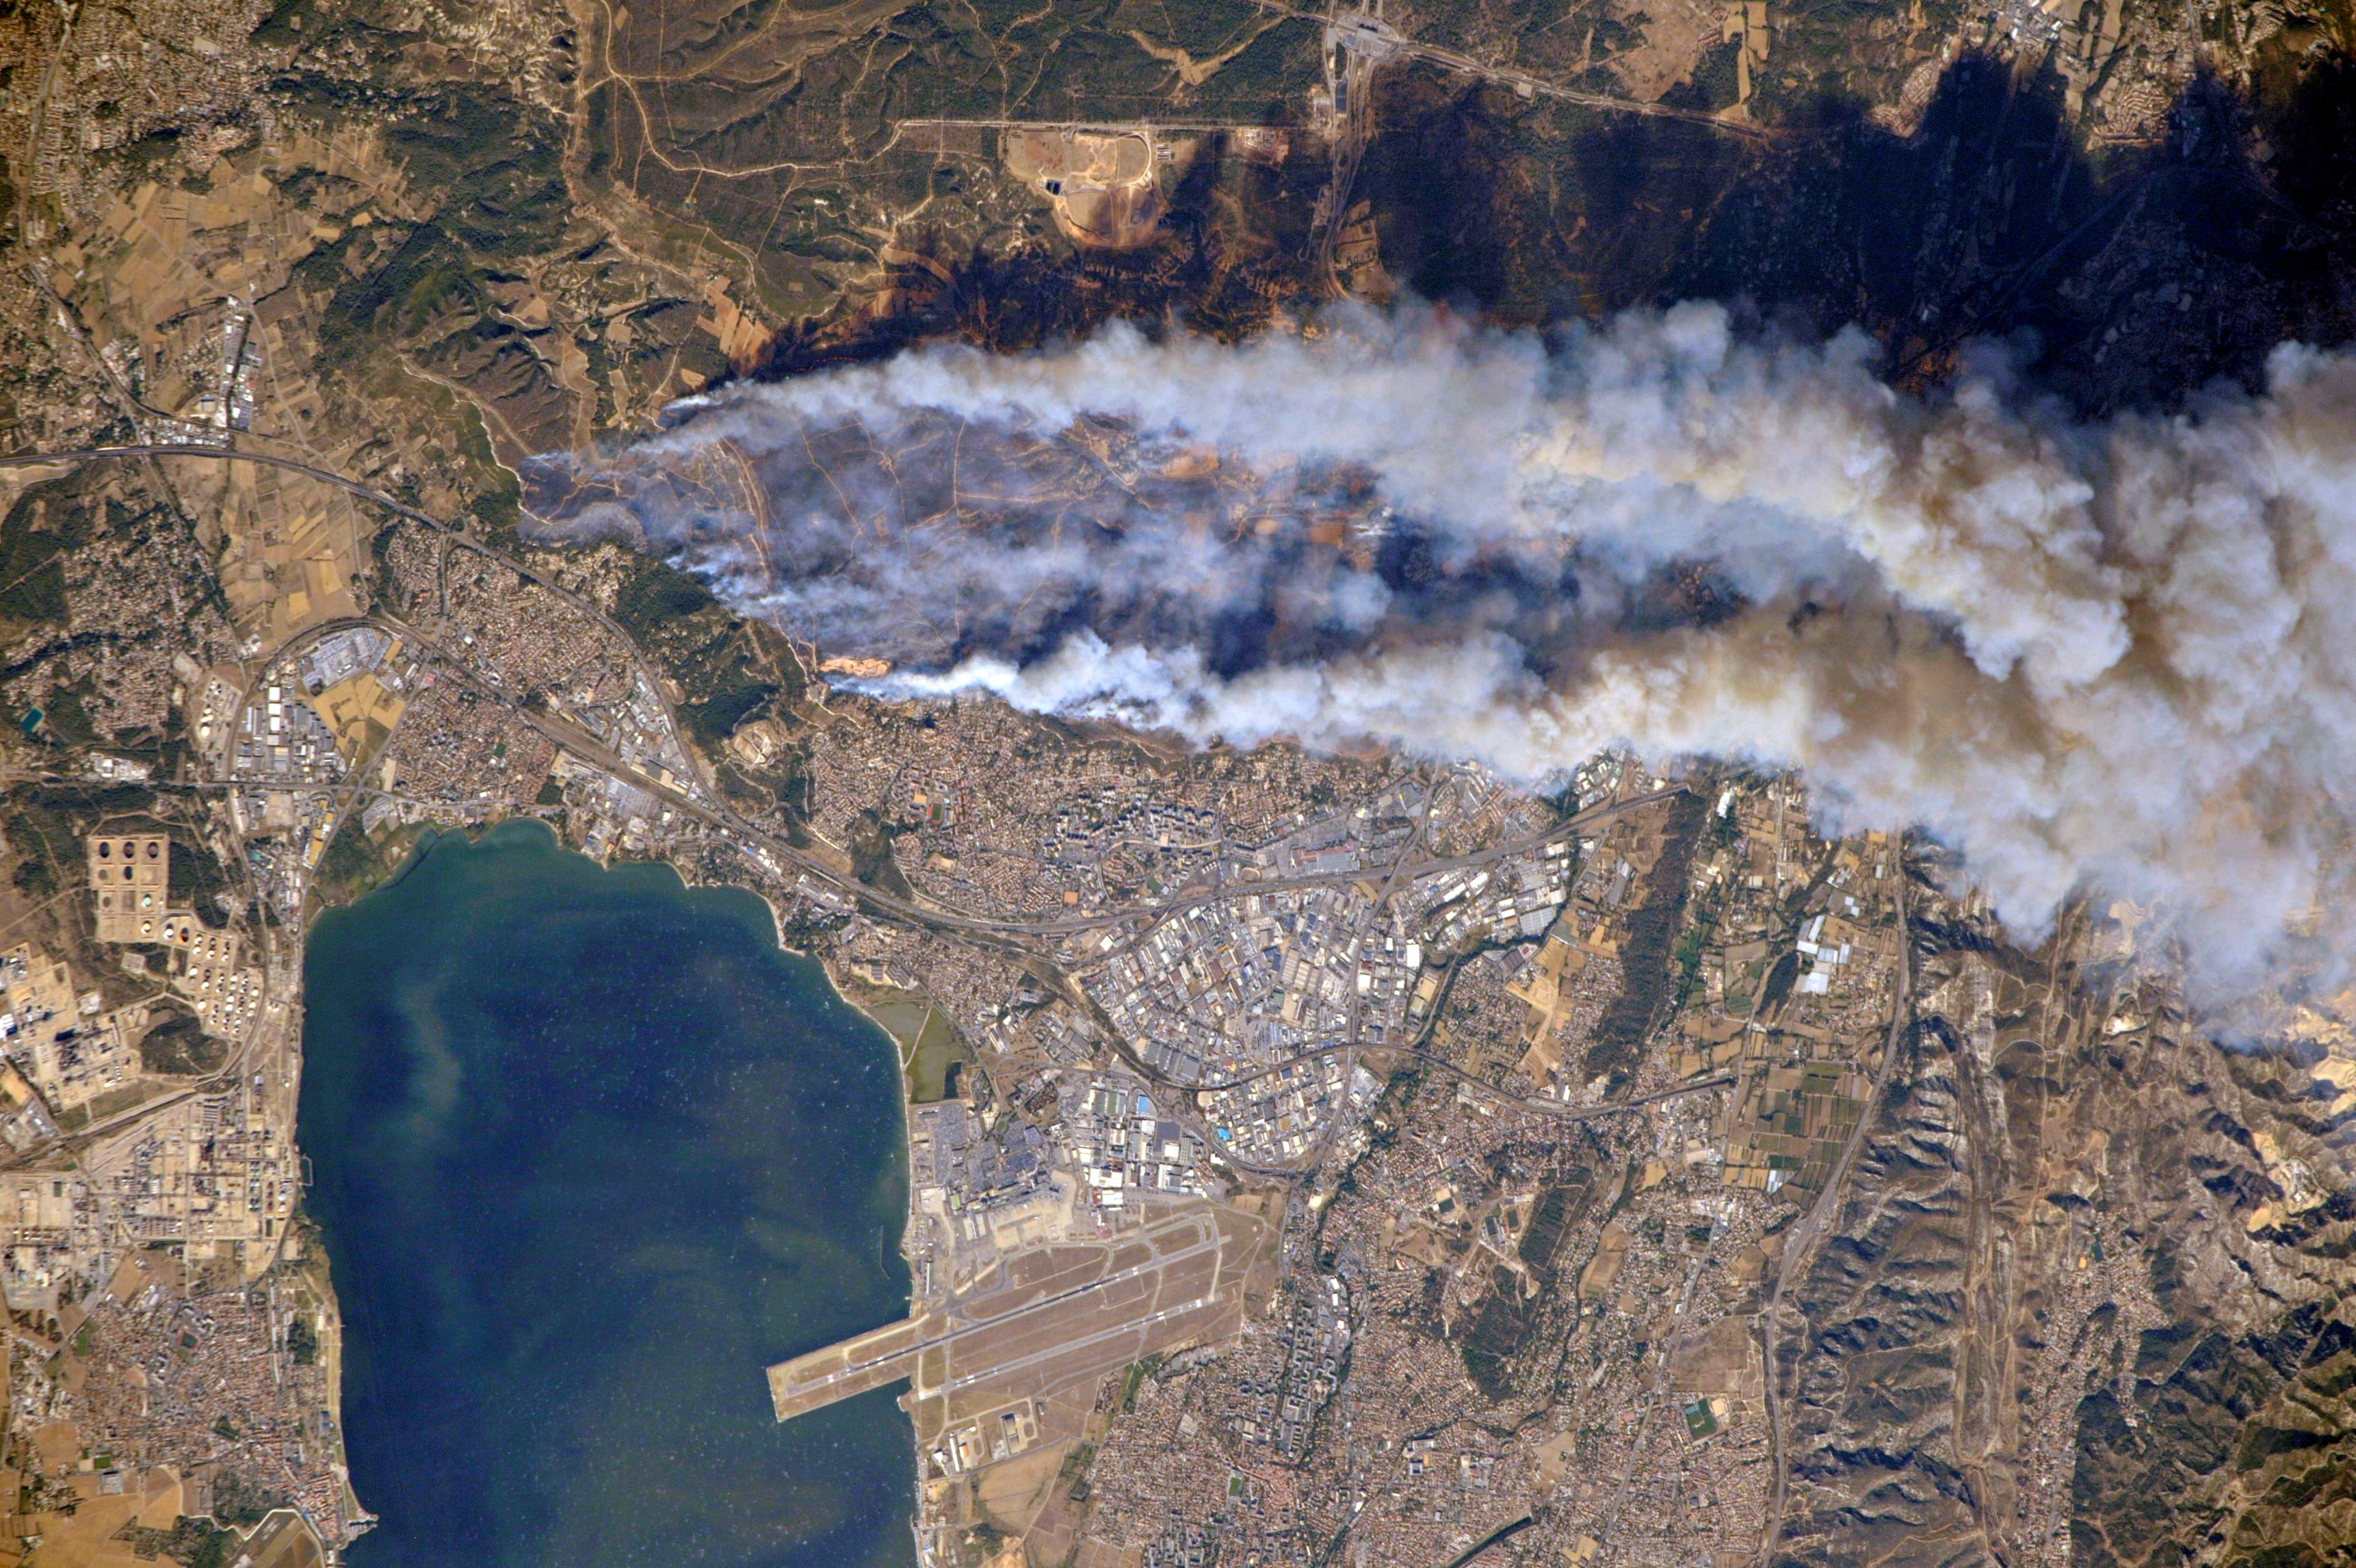 Incendies - Marseille Vitrolles Fos Les Pennes-Mirabeau - étang de Berre - International Space Station - ISS - Roscosmos - Oleg Skripochka-